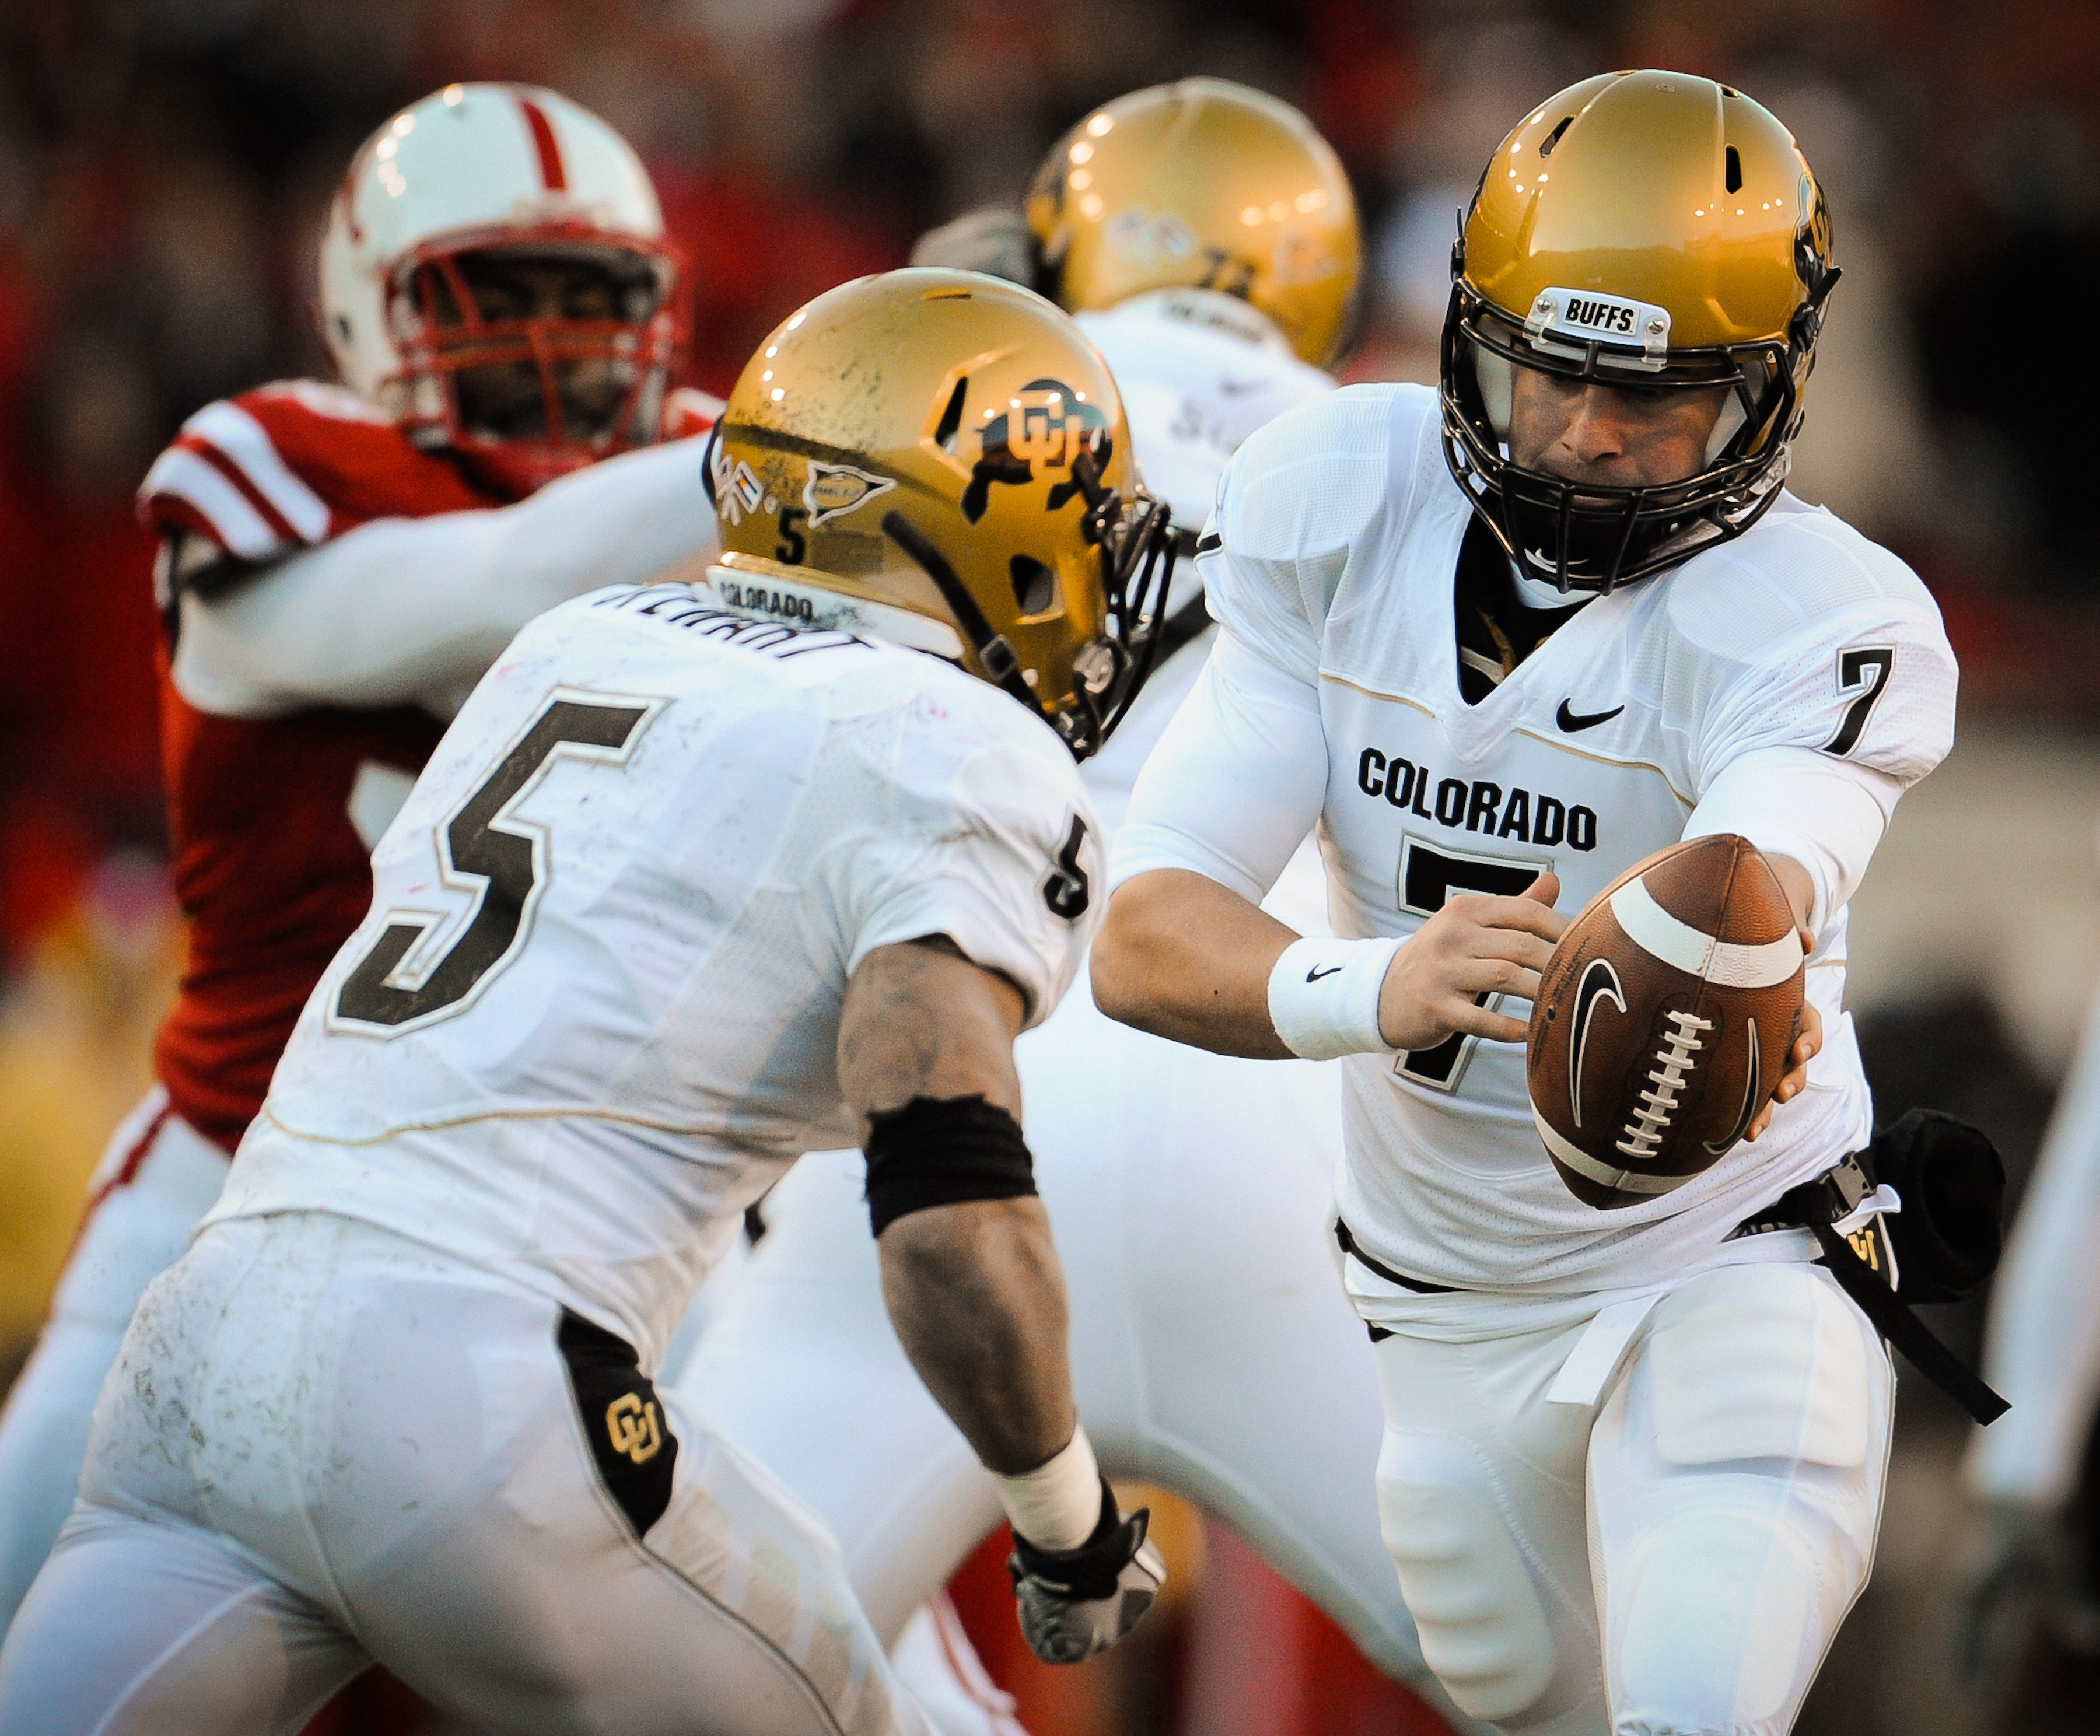 LINCOLN, NE - NOVEMBER 26: Cody Hawkins #7 hands the ball to teammate Rodney Stewart #5 of the Colorado Buffaloes during their game against the Colorado Buffaloes at Memorial Stadium on November 26, 2010 in Lincoln, Nebraska. Nebraska defeated Colorado 45